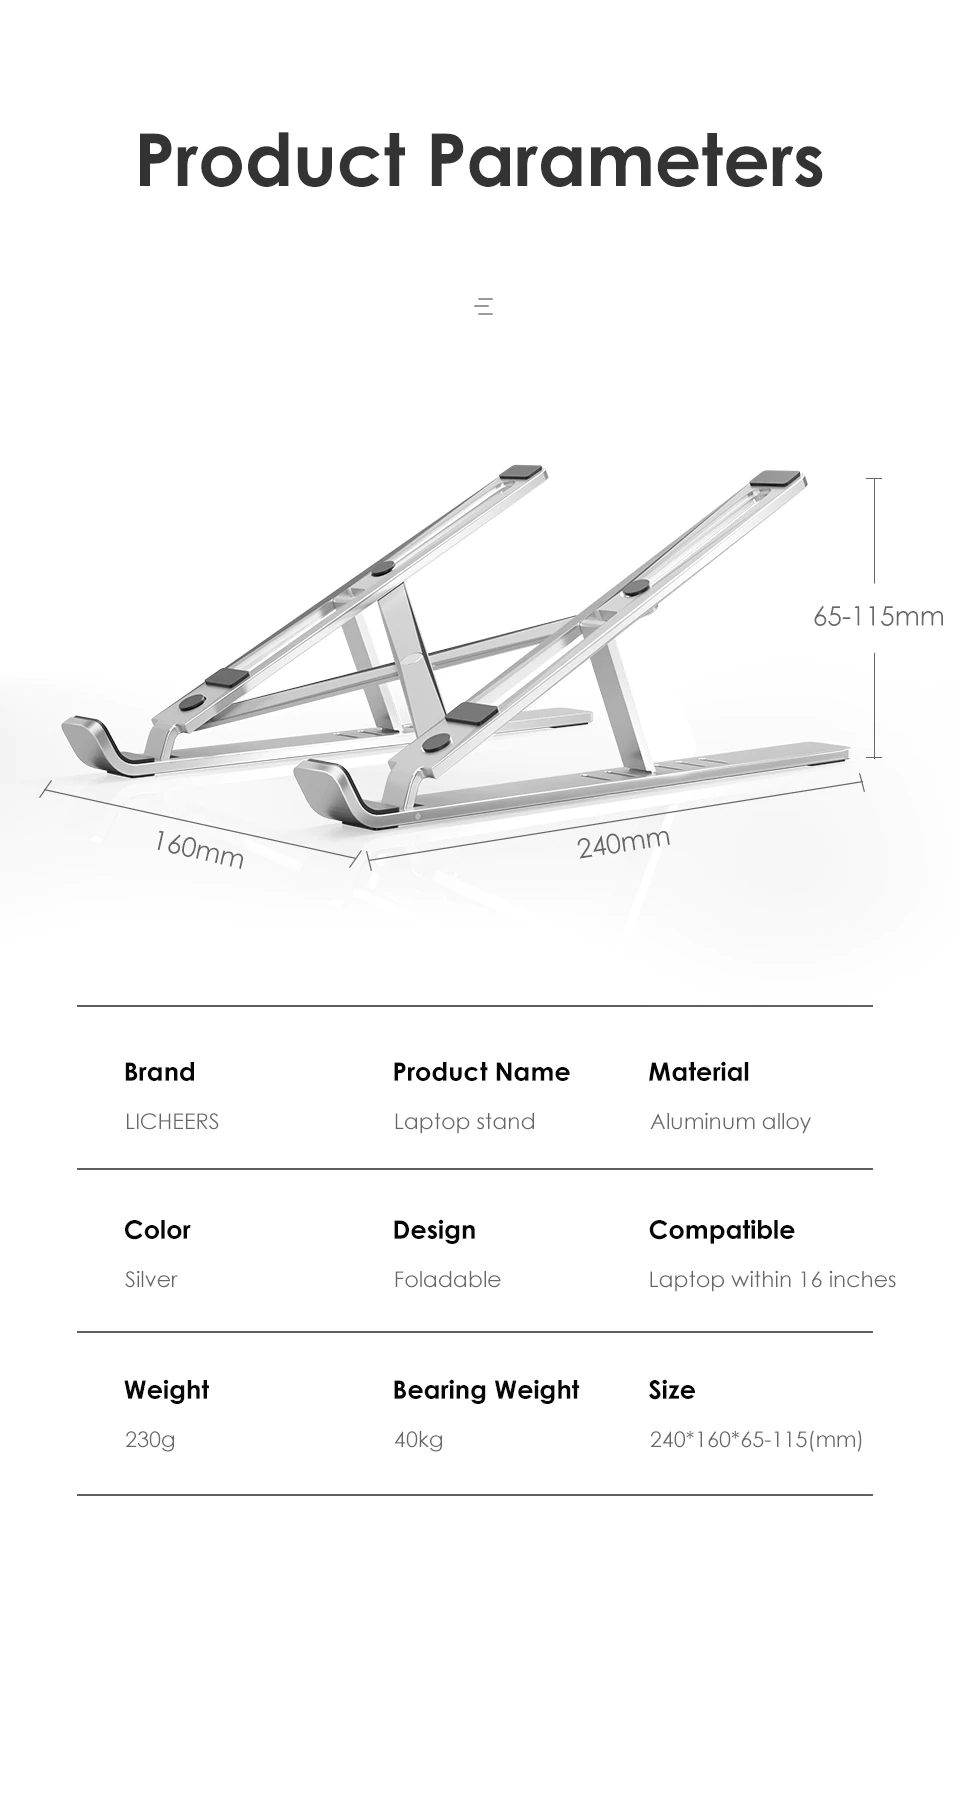 Parameteres Of Laptop Stand